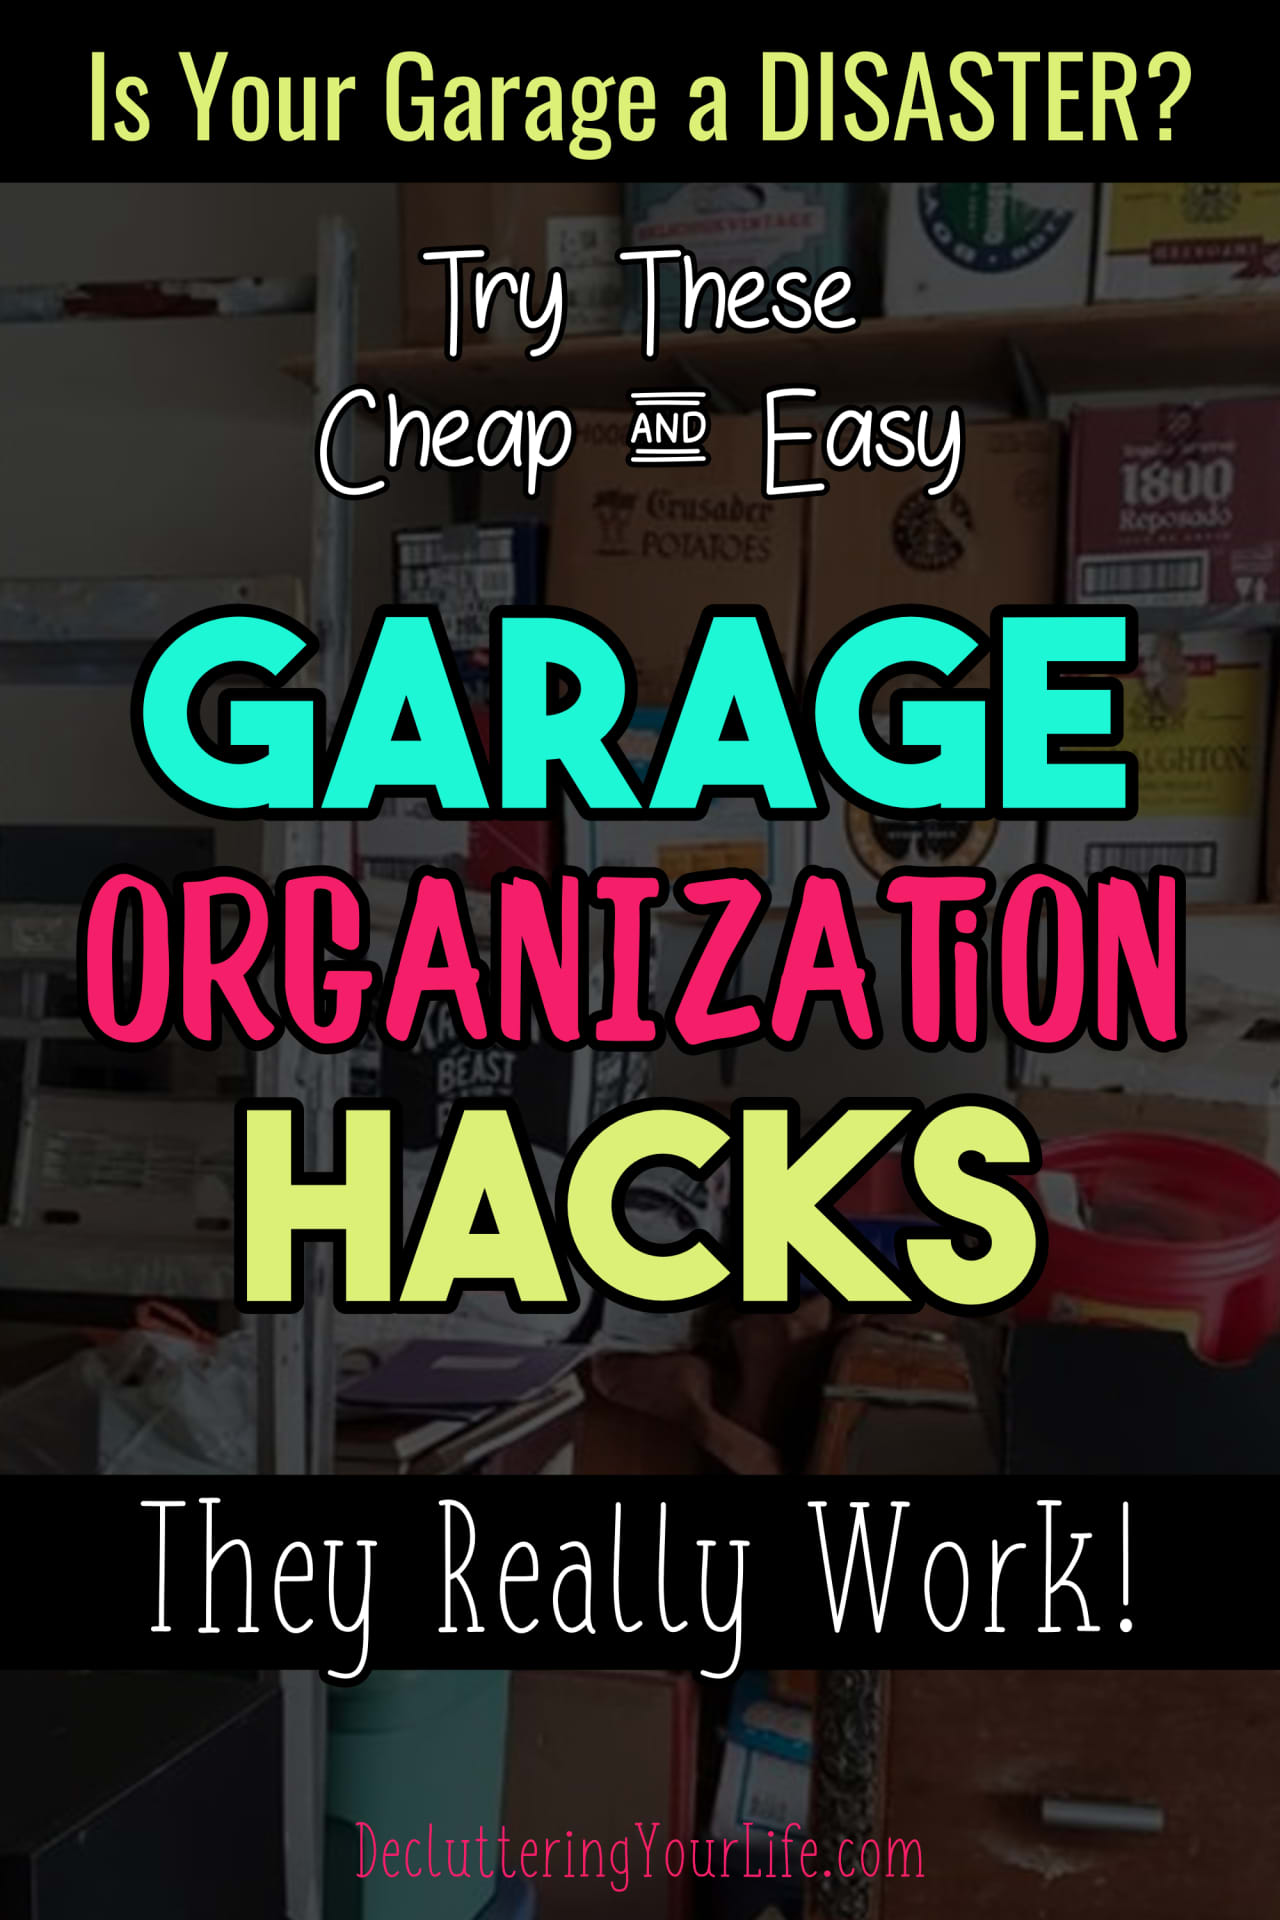 Garage storage and organization hacks - cheap and easy ways to organize your garage on a budget.  Get organized and STAY organized in your garge by decluttering your garage clutter.  These organizing ideas really work!